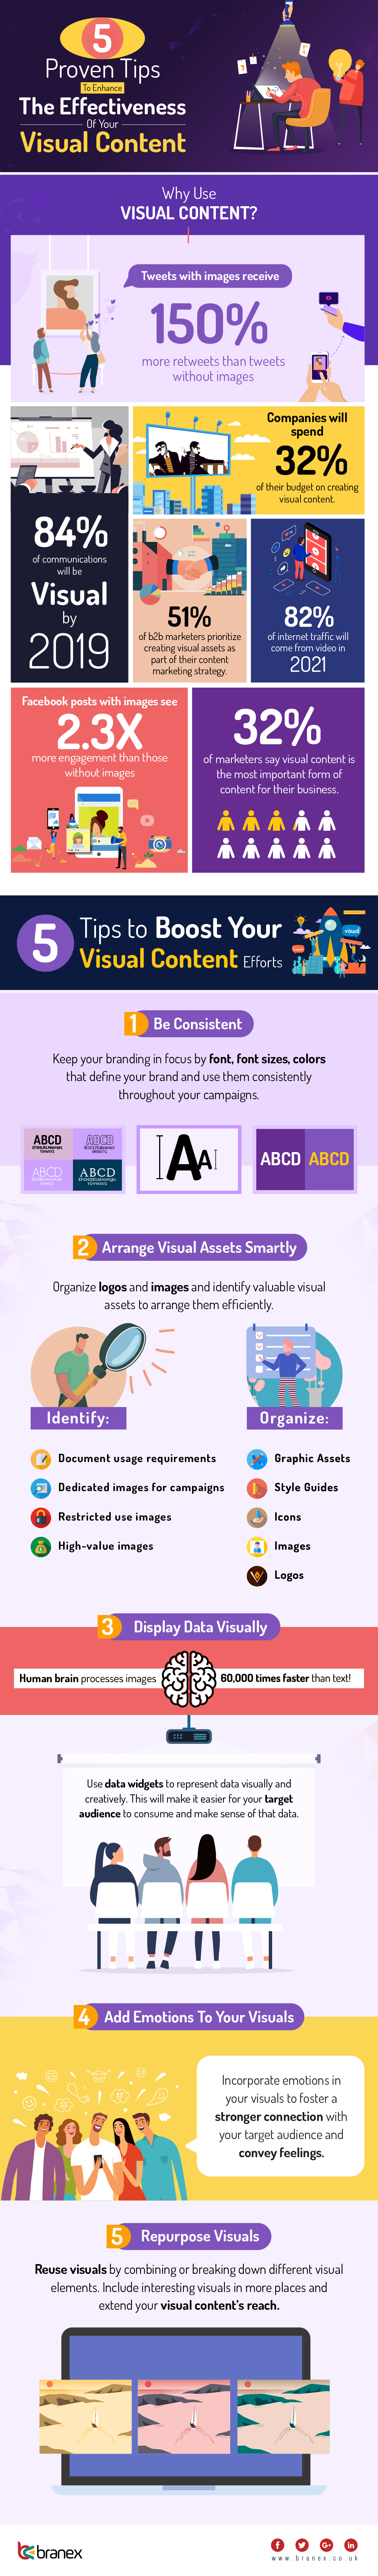 Digital Marketing: Tips to Boost Your Visual Content [Infographic]